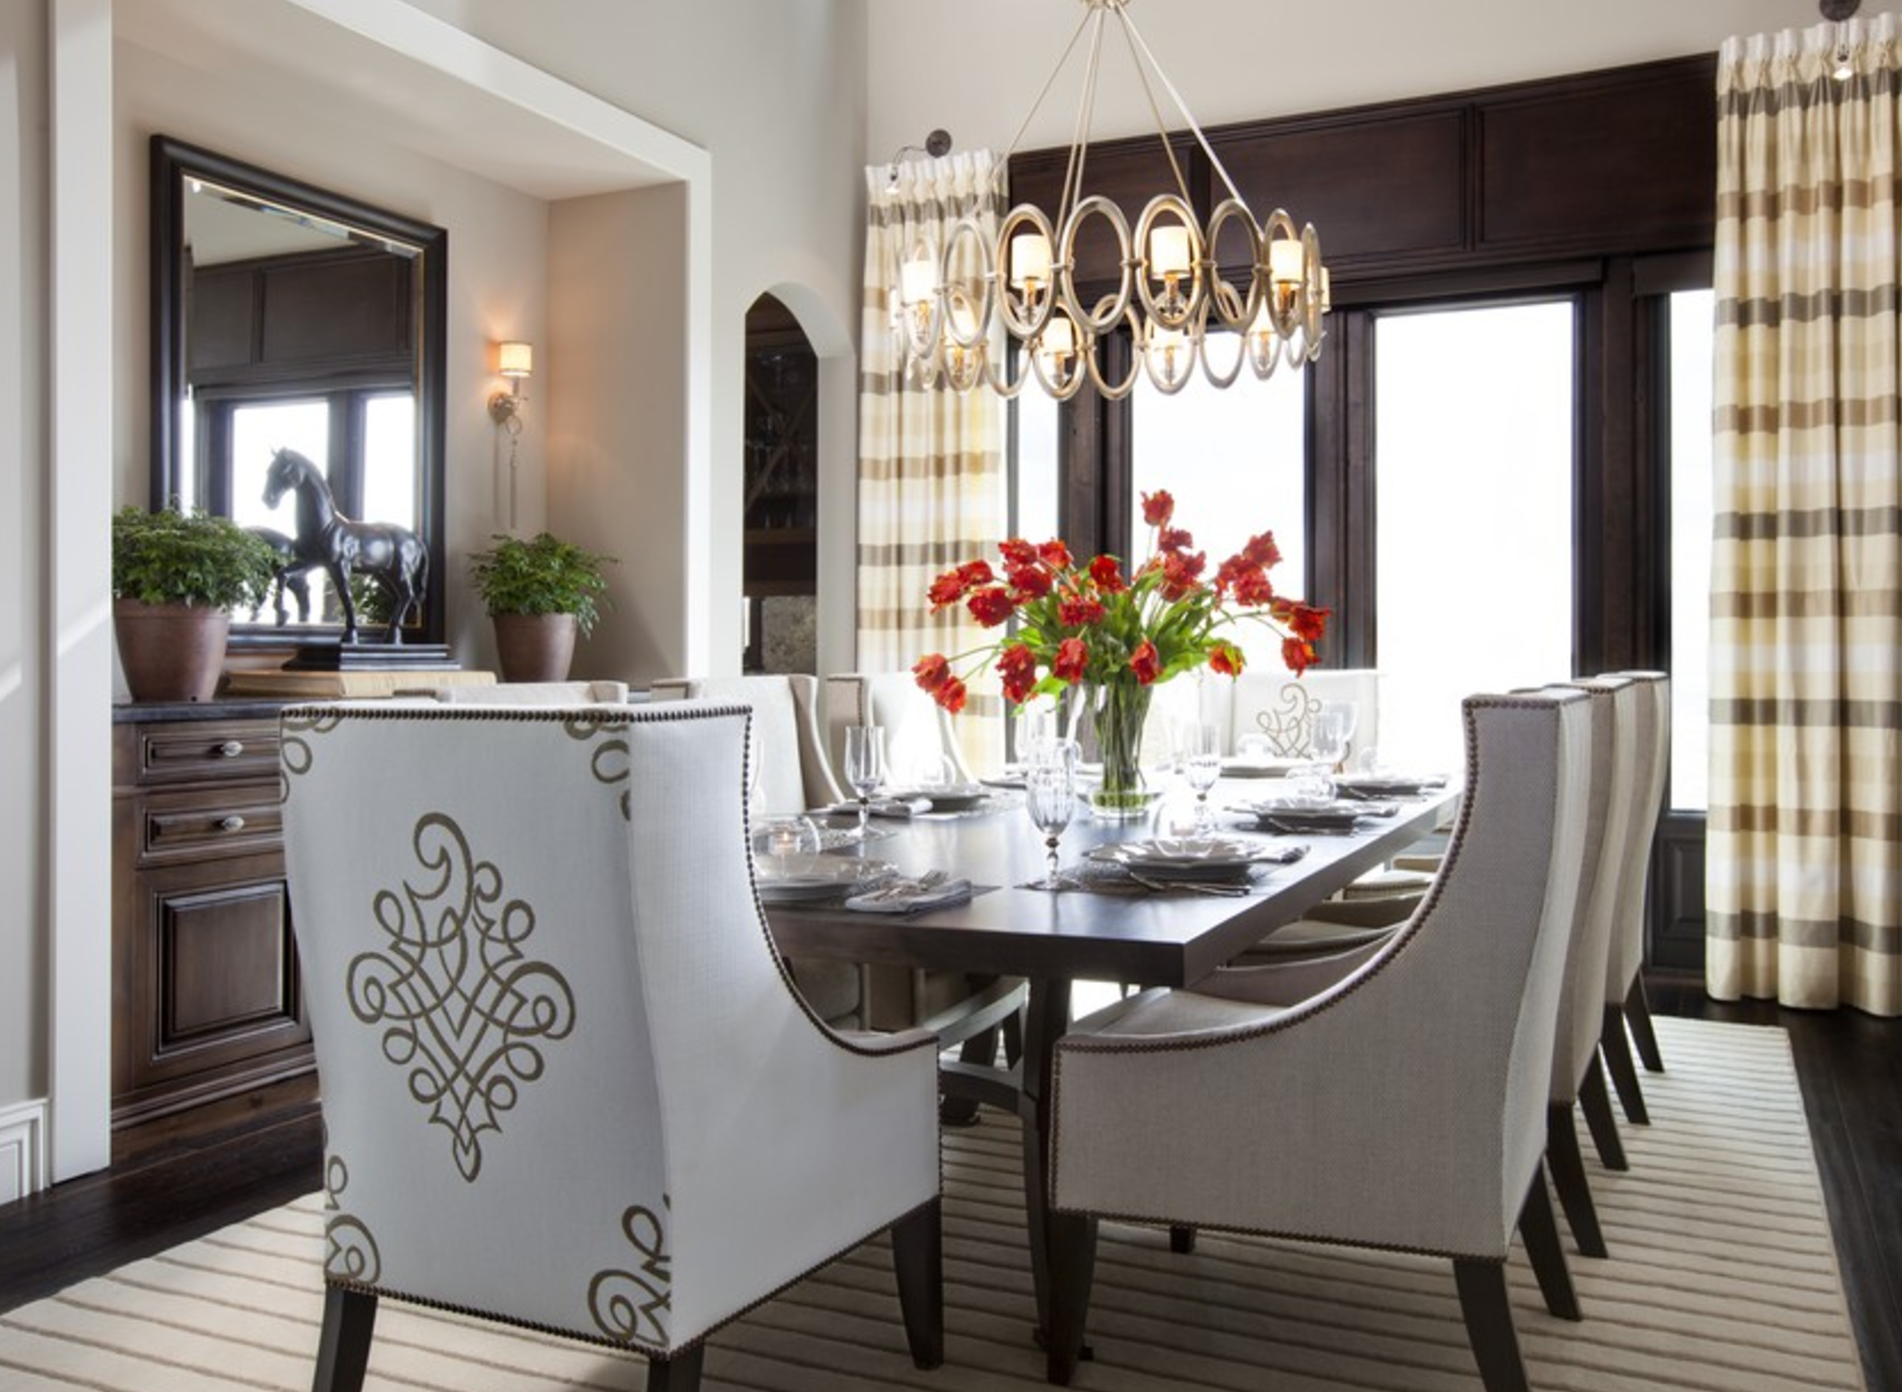 Dining Table Buying Guide: How To Find The Perfect Dining With Regard To Well Known Transitional 6 Seating Casual Dining Tables (View 25 of 30)